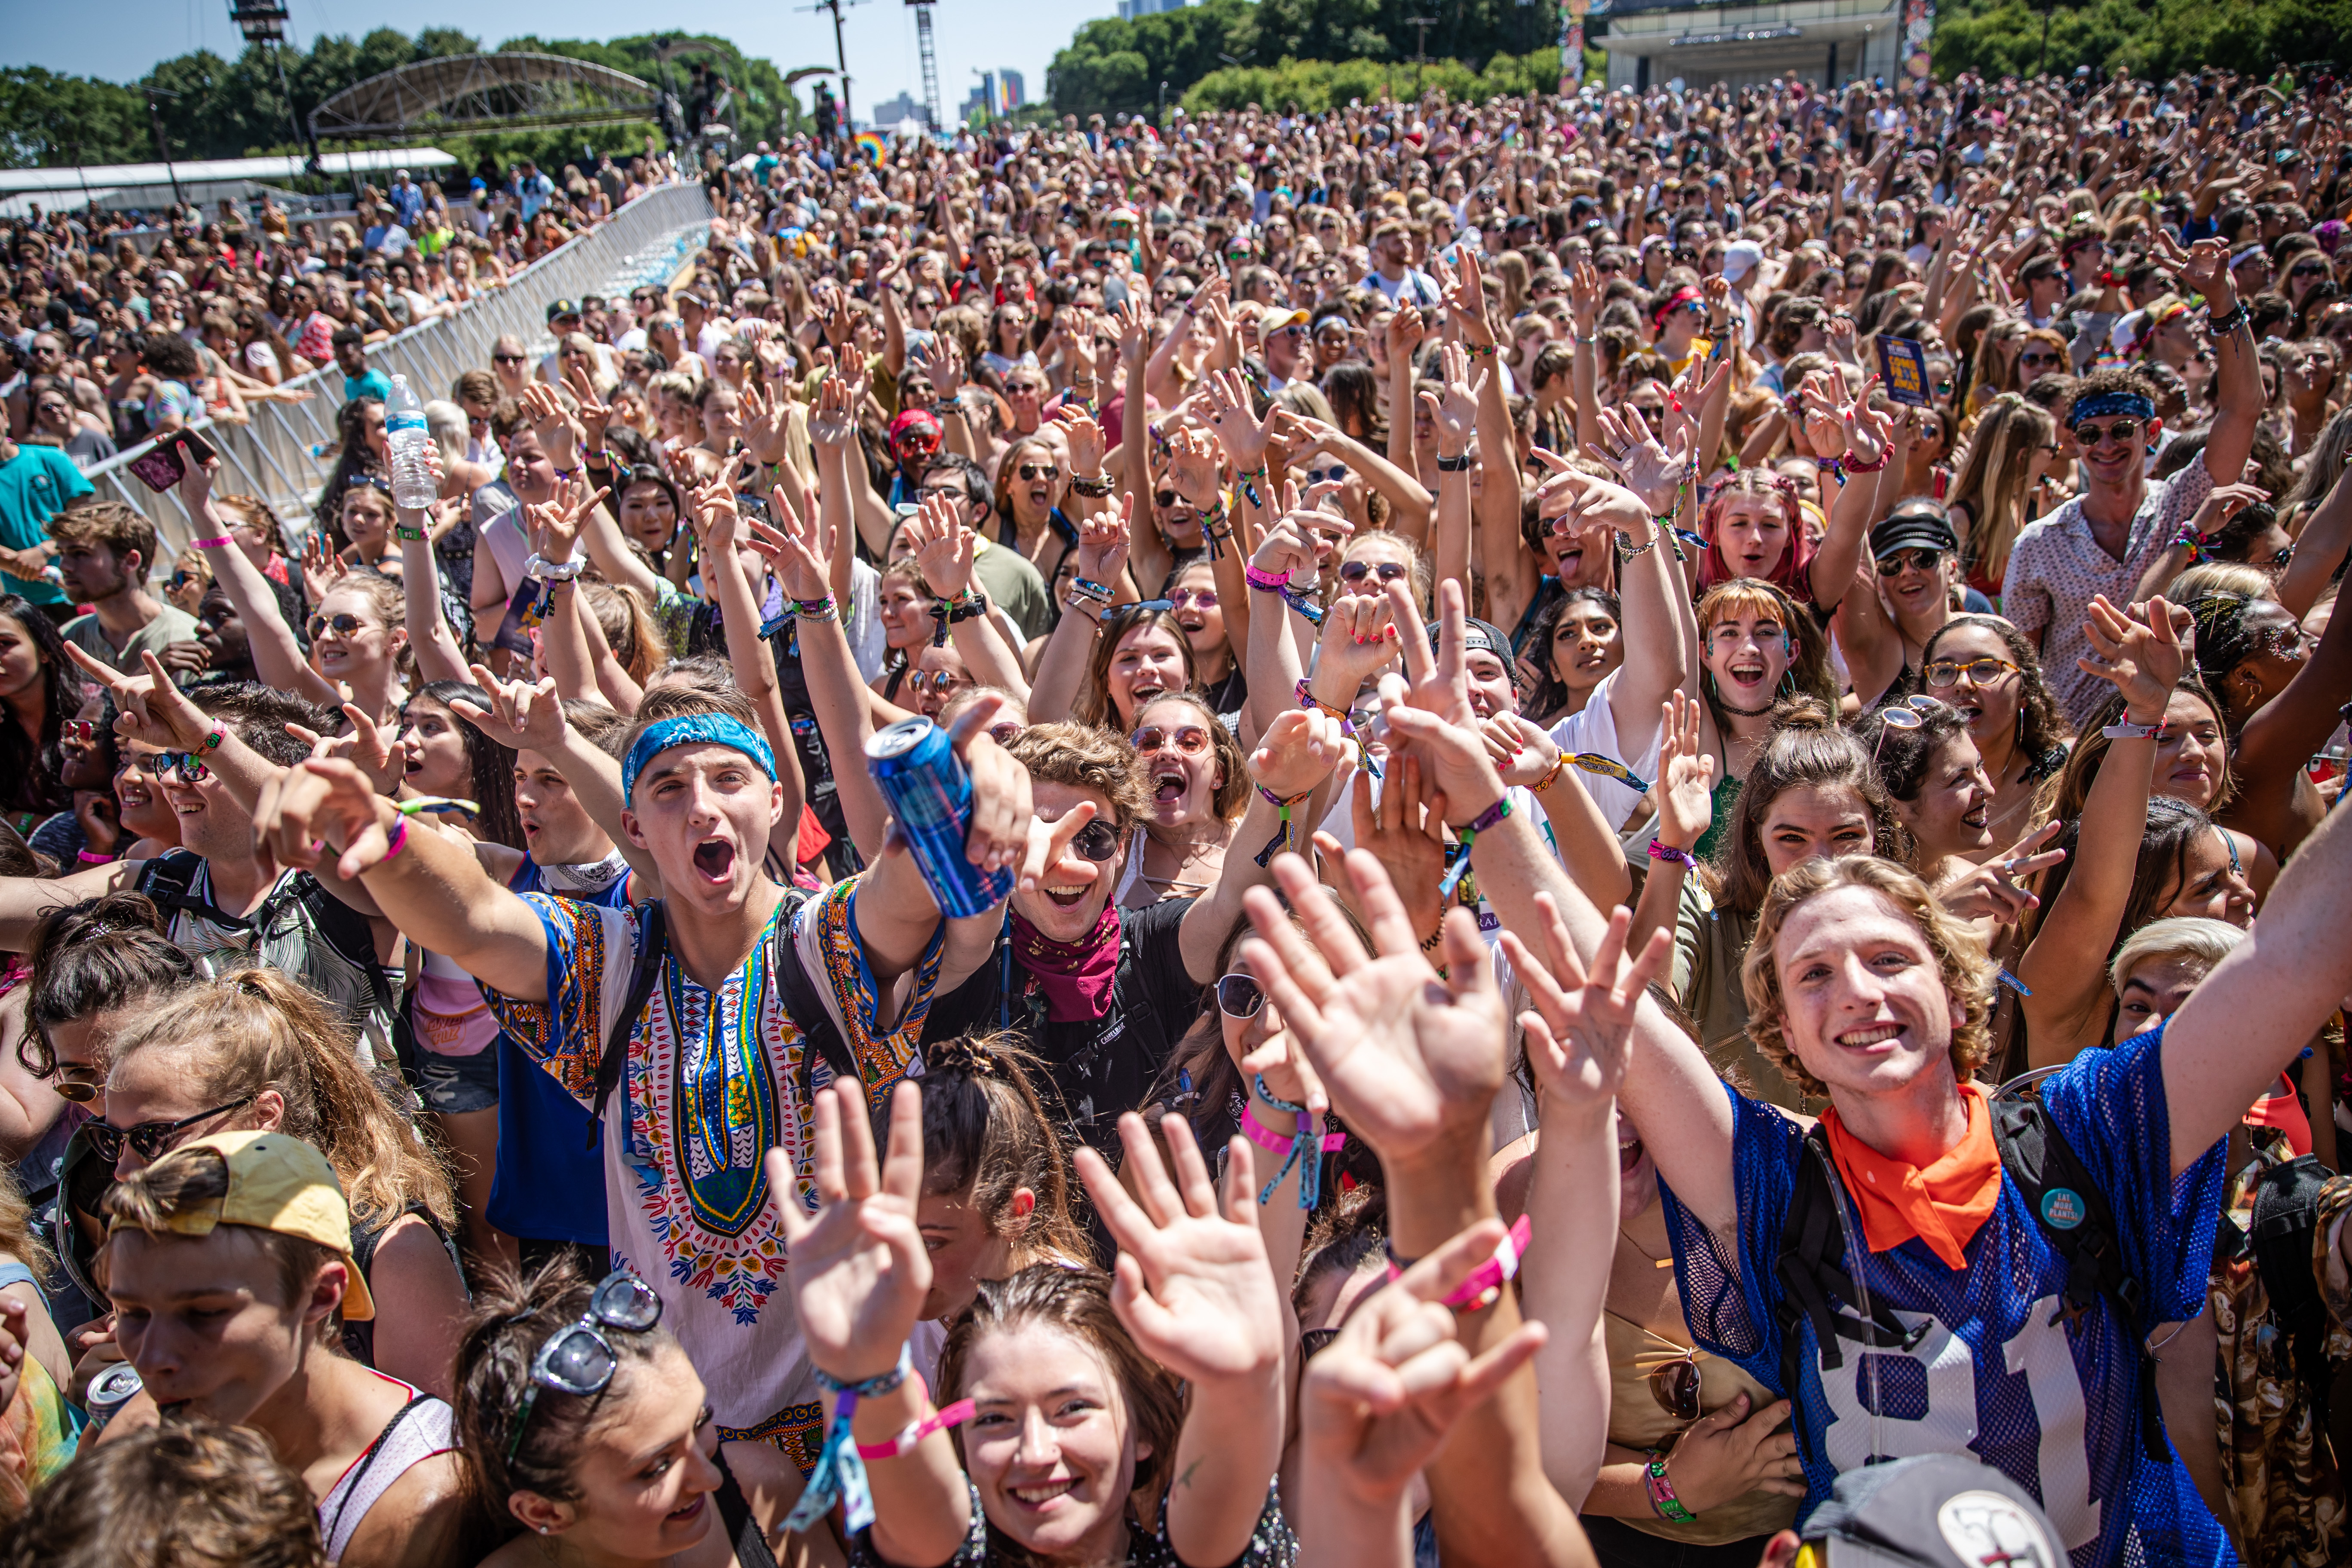 Fans enjoy Day 1 of Lollapalooza in Chicago's Grant Park.